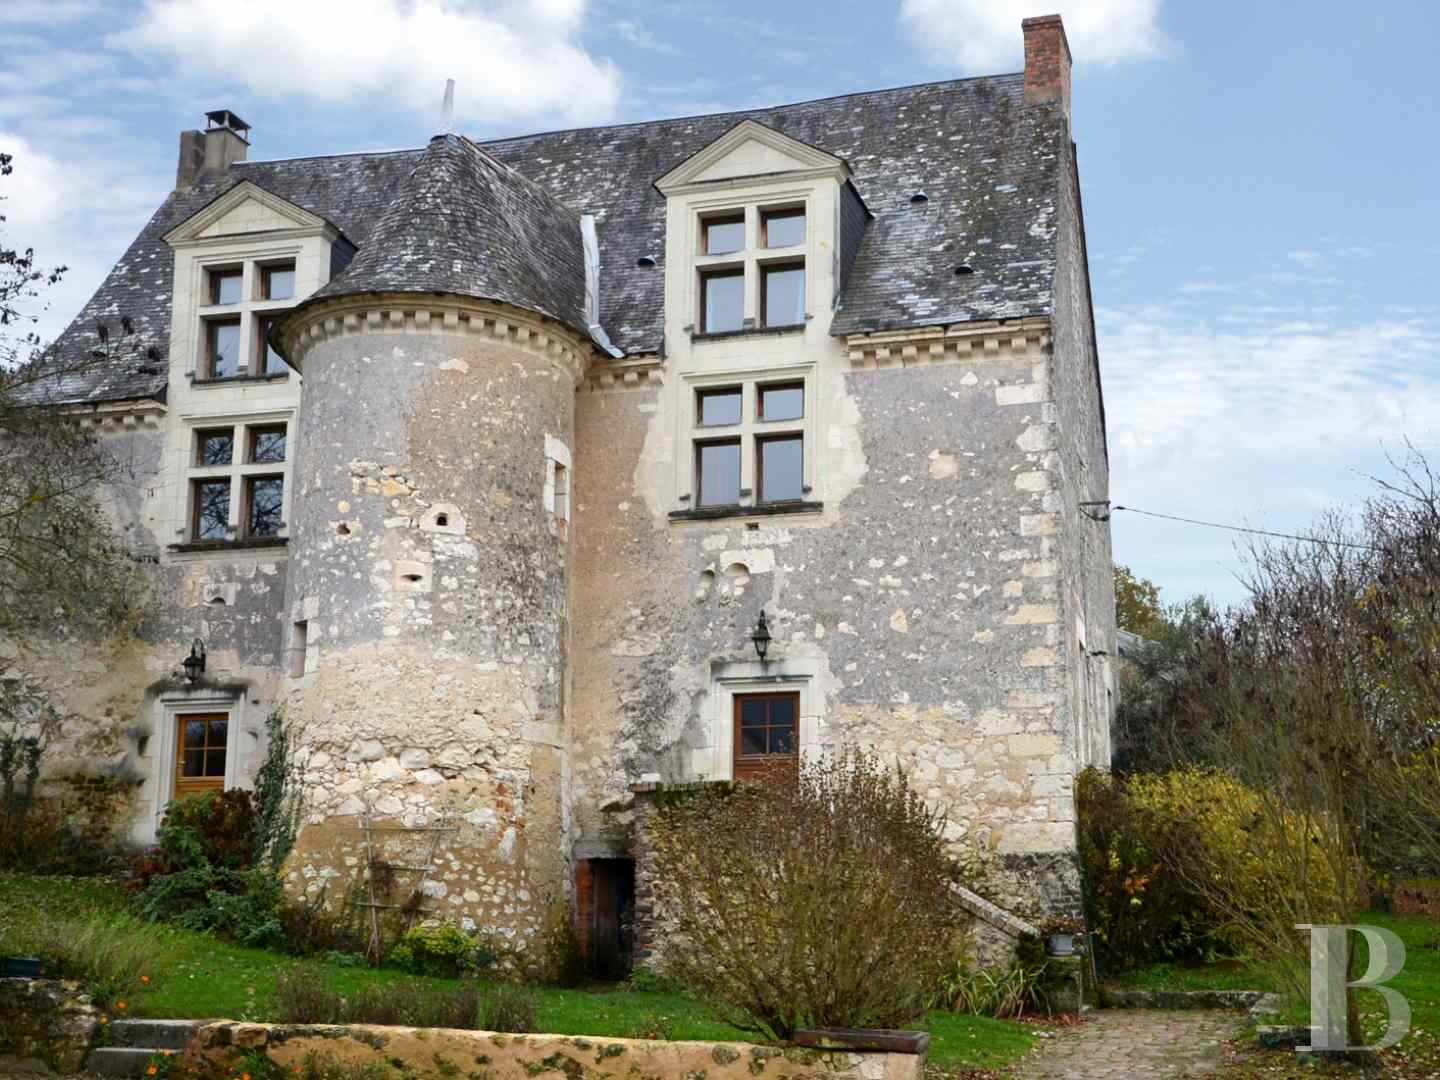 France mansions for sale pays de loire manors farms - 1 zoom